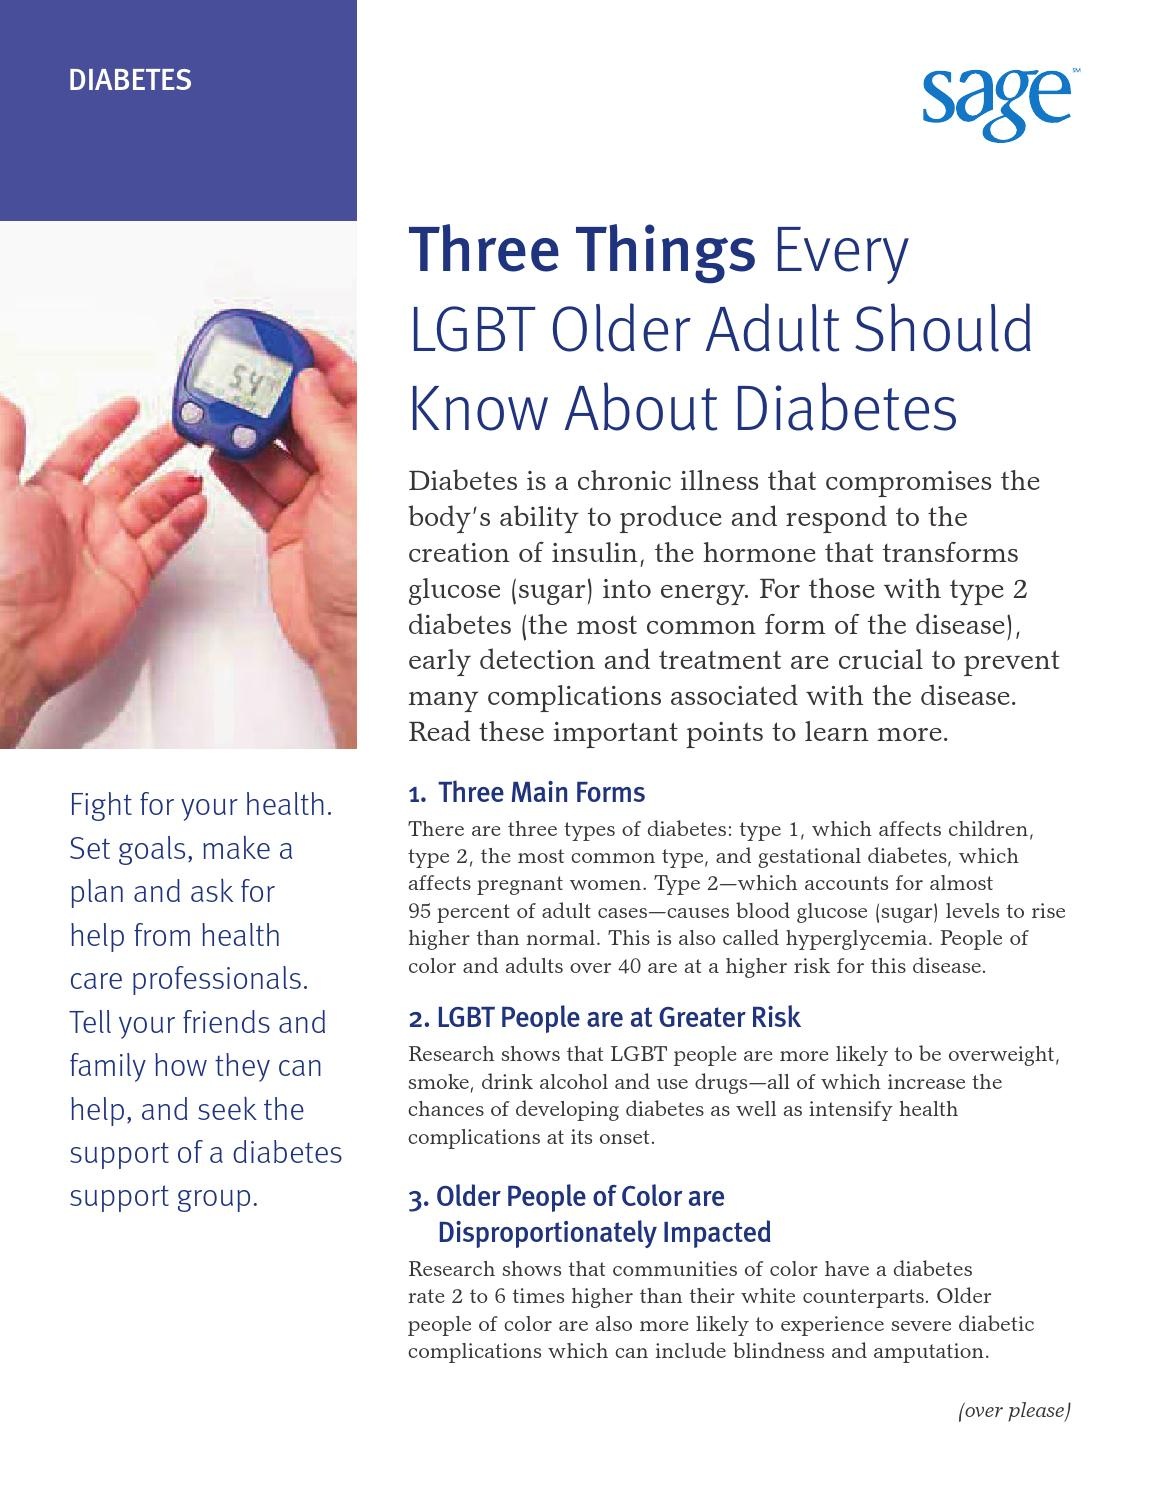 diabetes for older adult